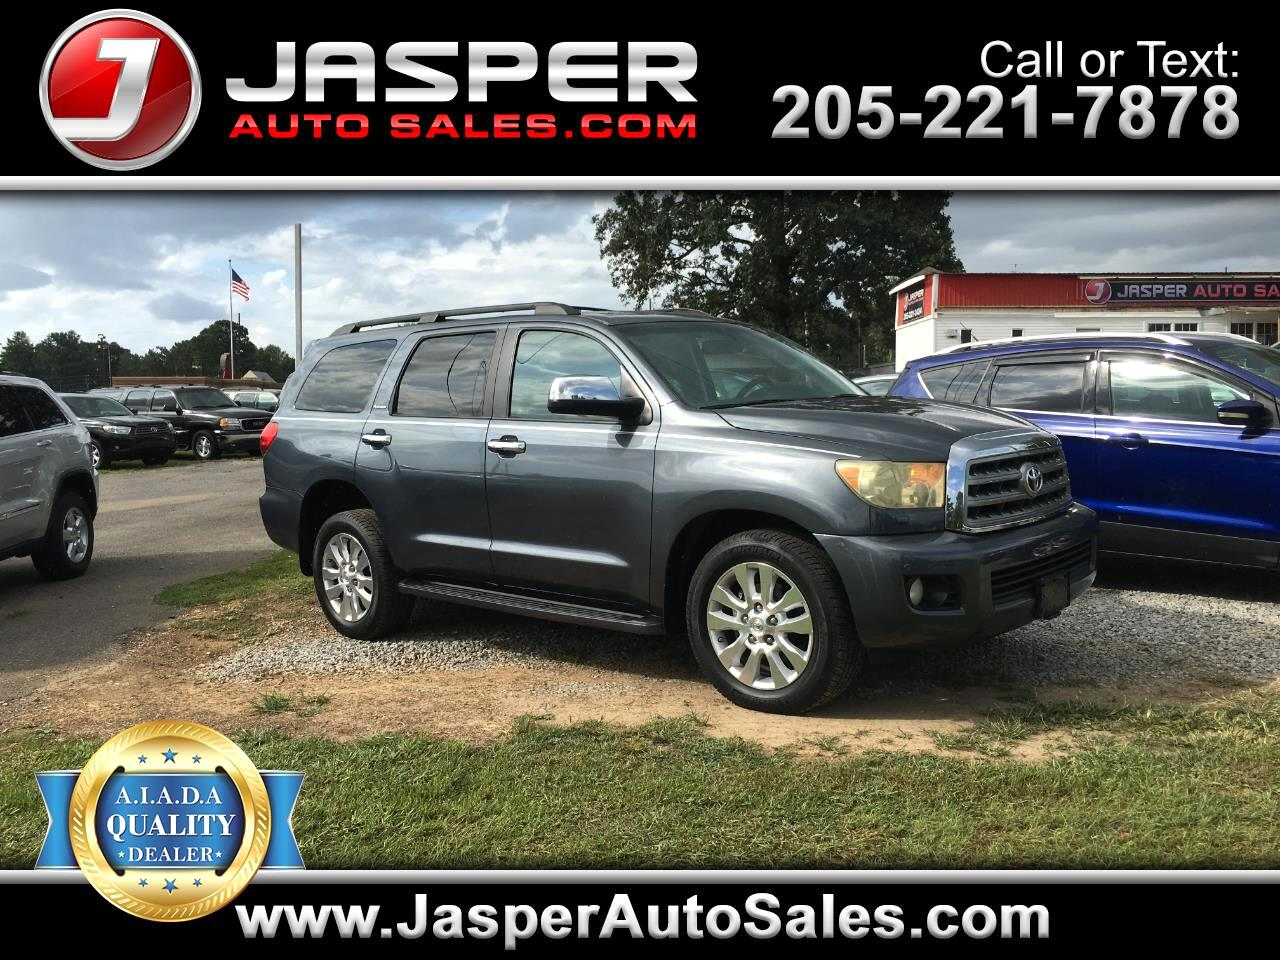 2008 Toyota Sequoia RWD 4dr LV8 6-Spd AT Platinum (Natl)